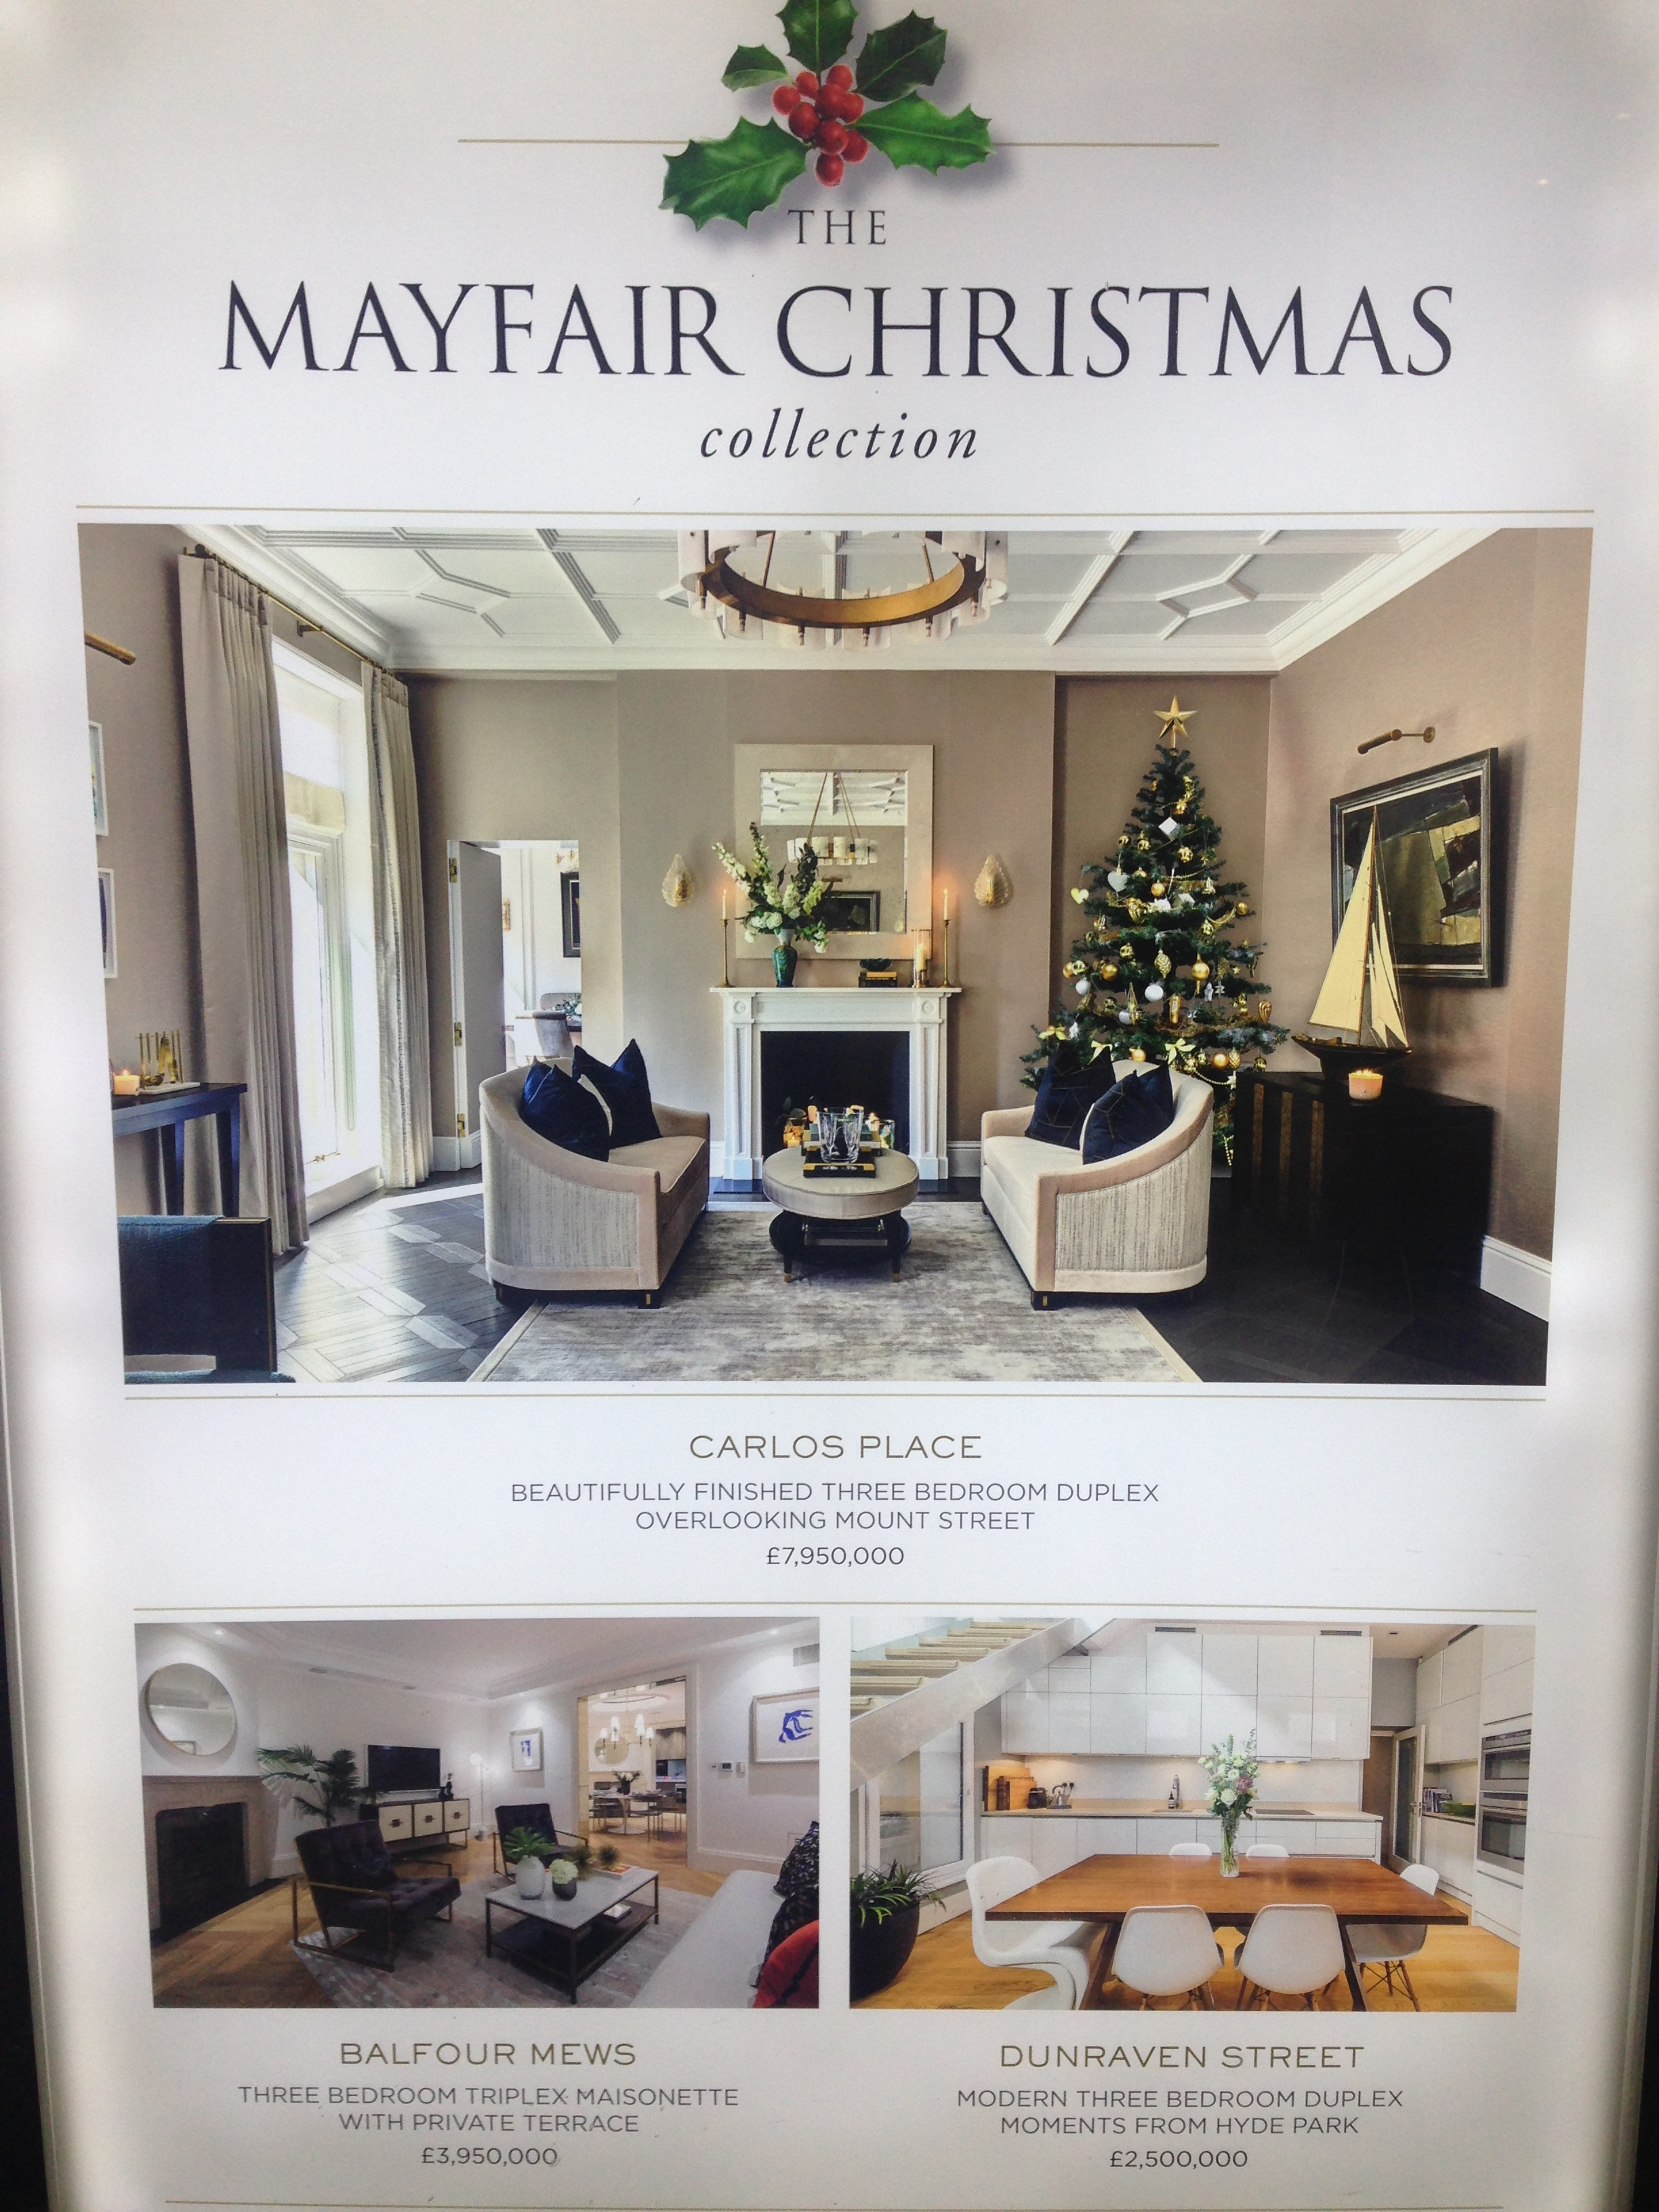 Mayfair prices1.JPG